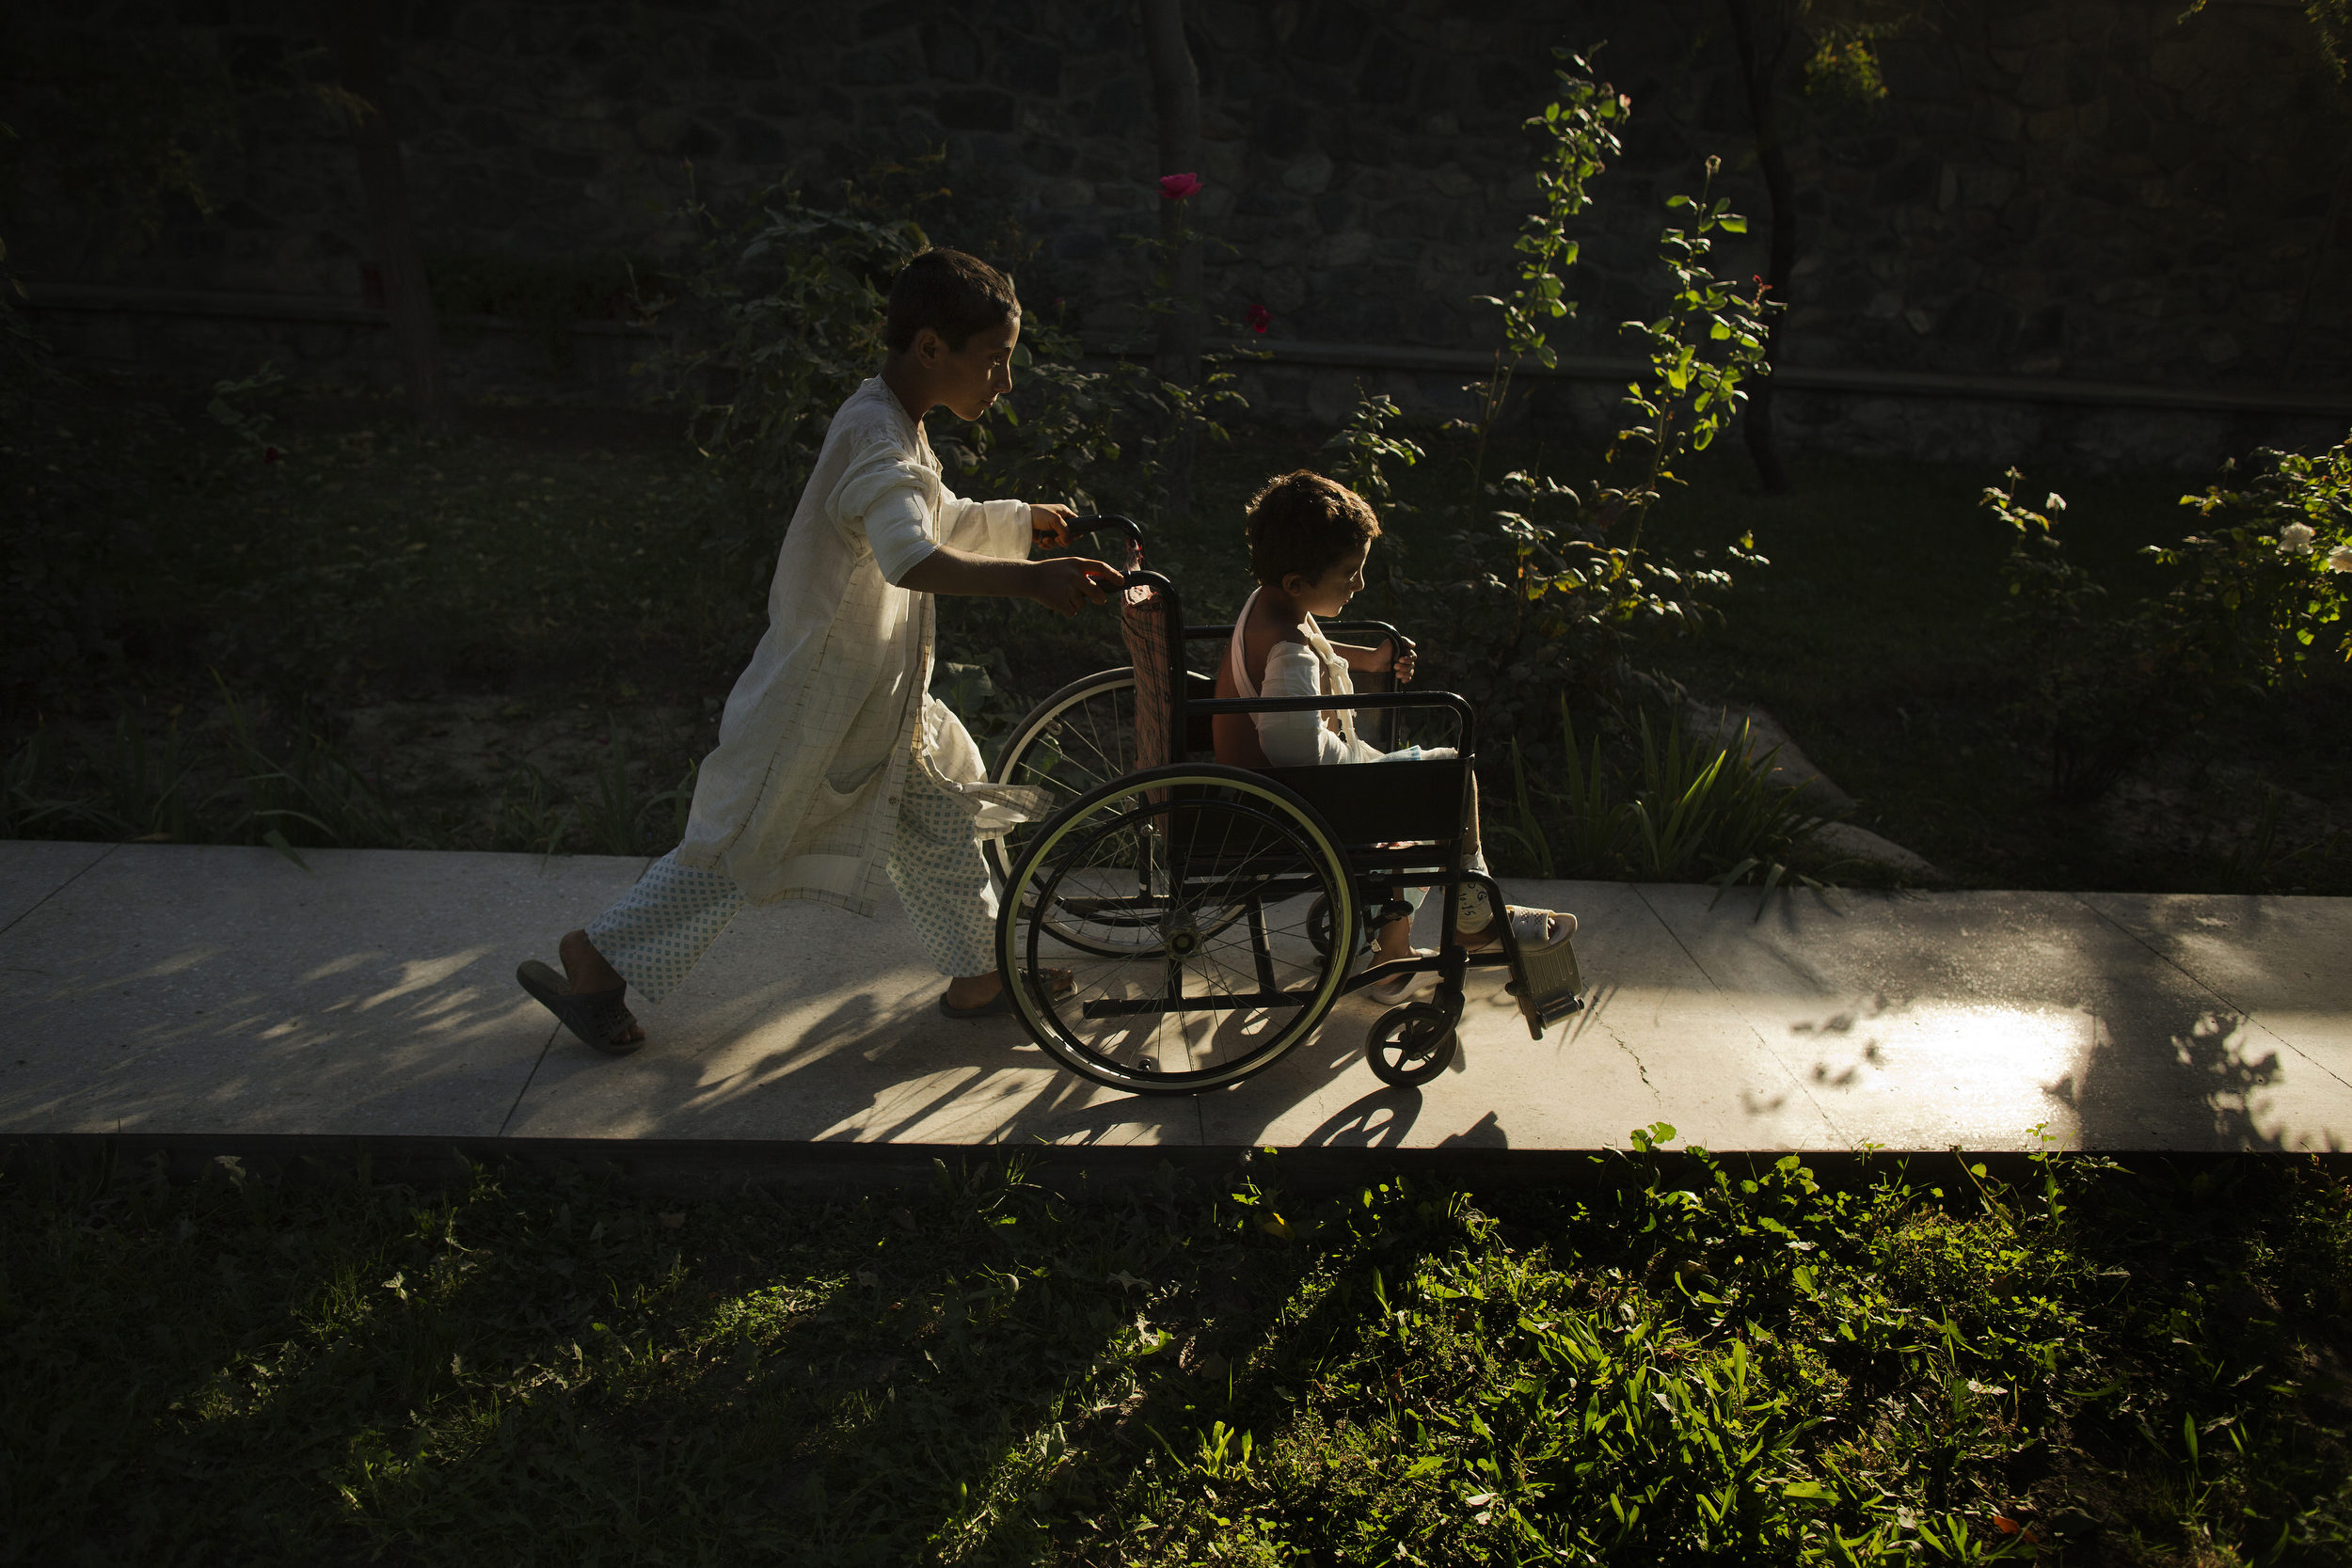 Ajmal 11, pushes Sangeer, 7, along a path in the hospital.